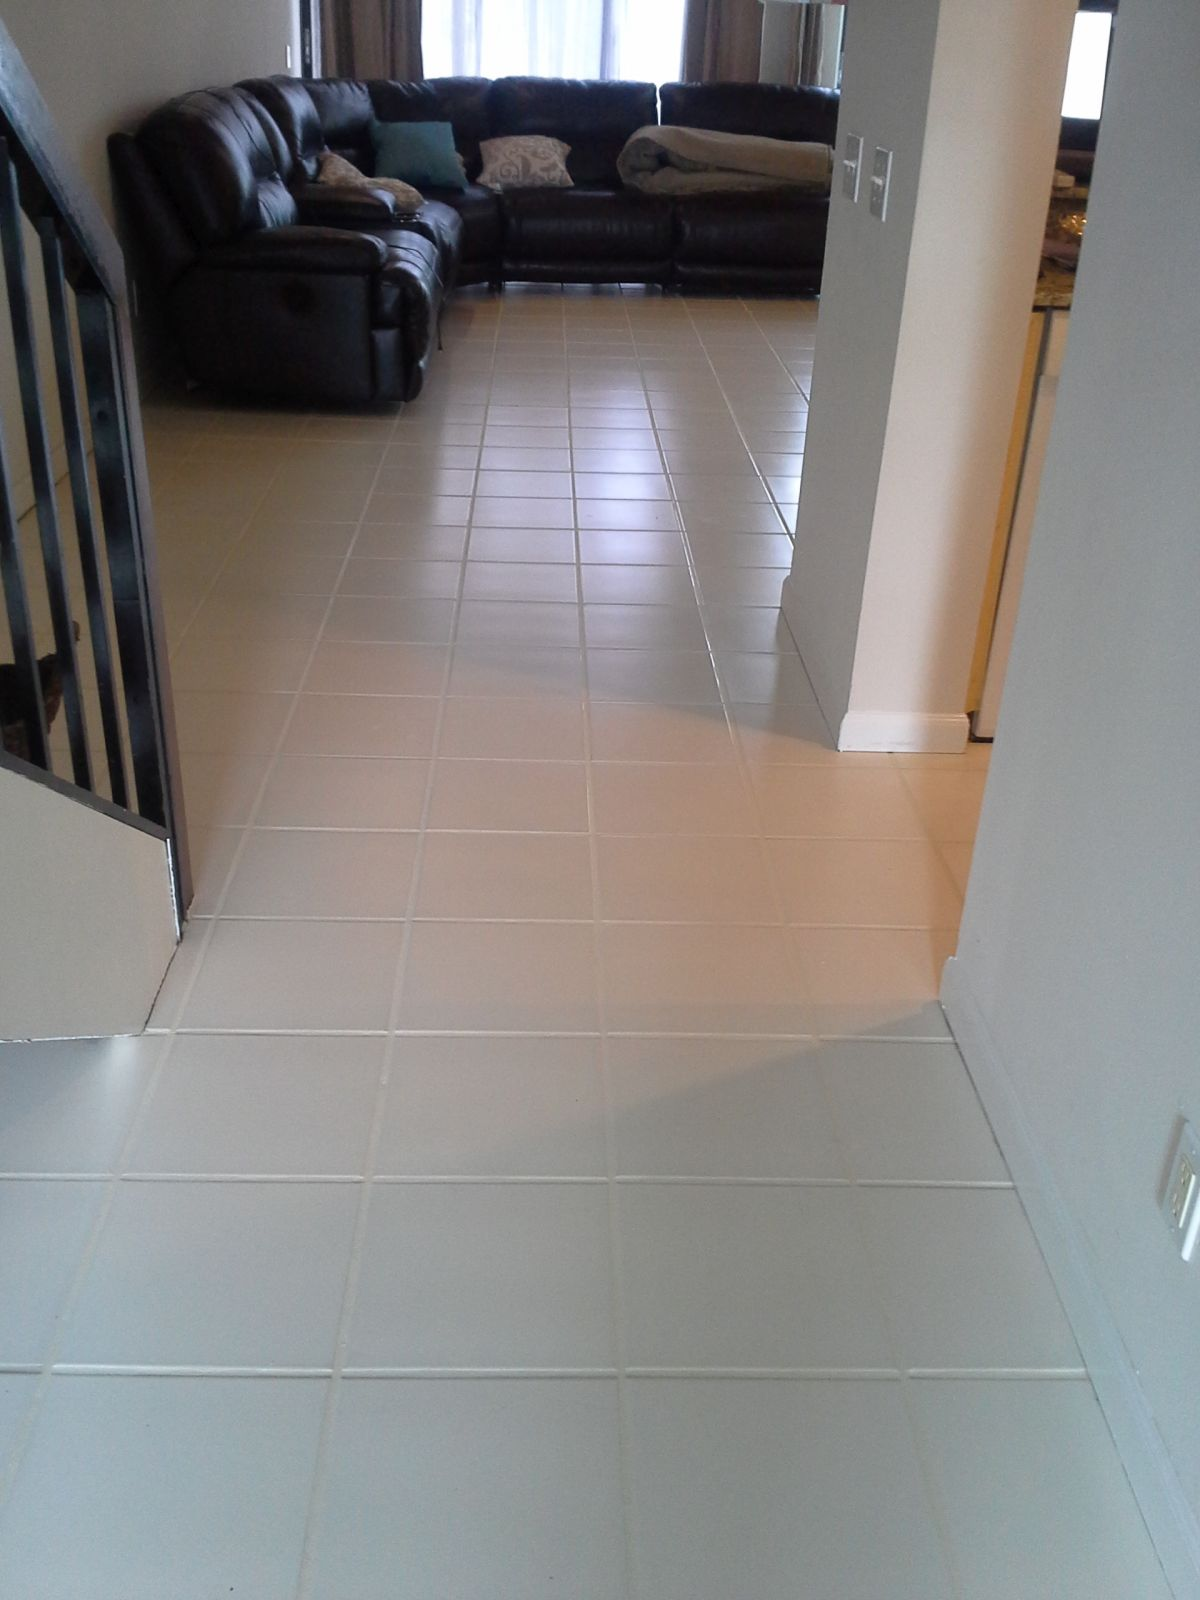 tile instalation Installing tile yourself can be a daunting task made simple if you follow our step- by-step tile installation guide with all the information you need to know.